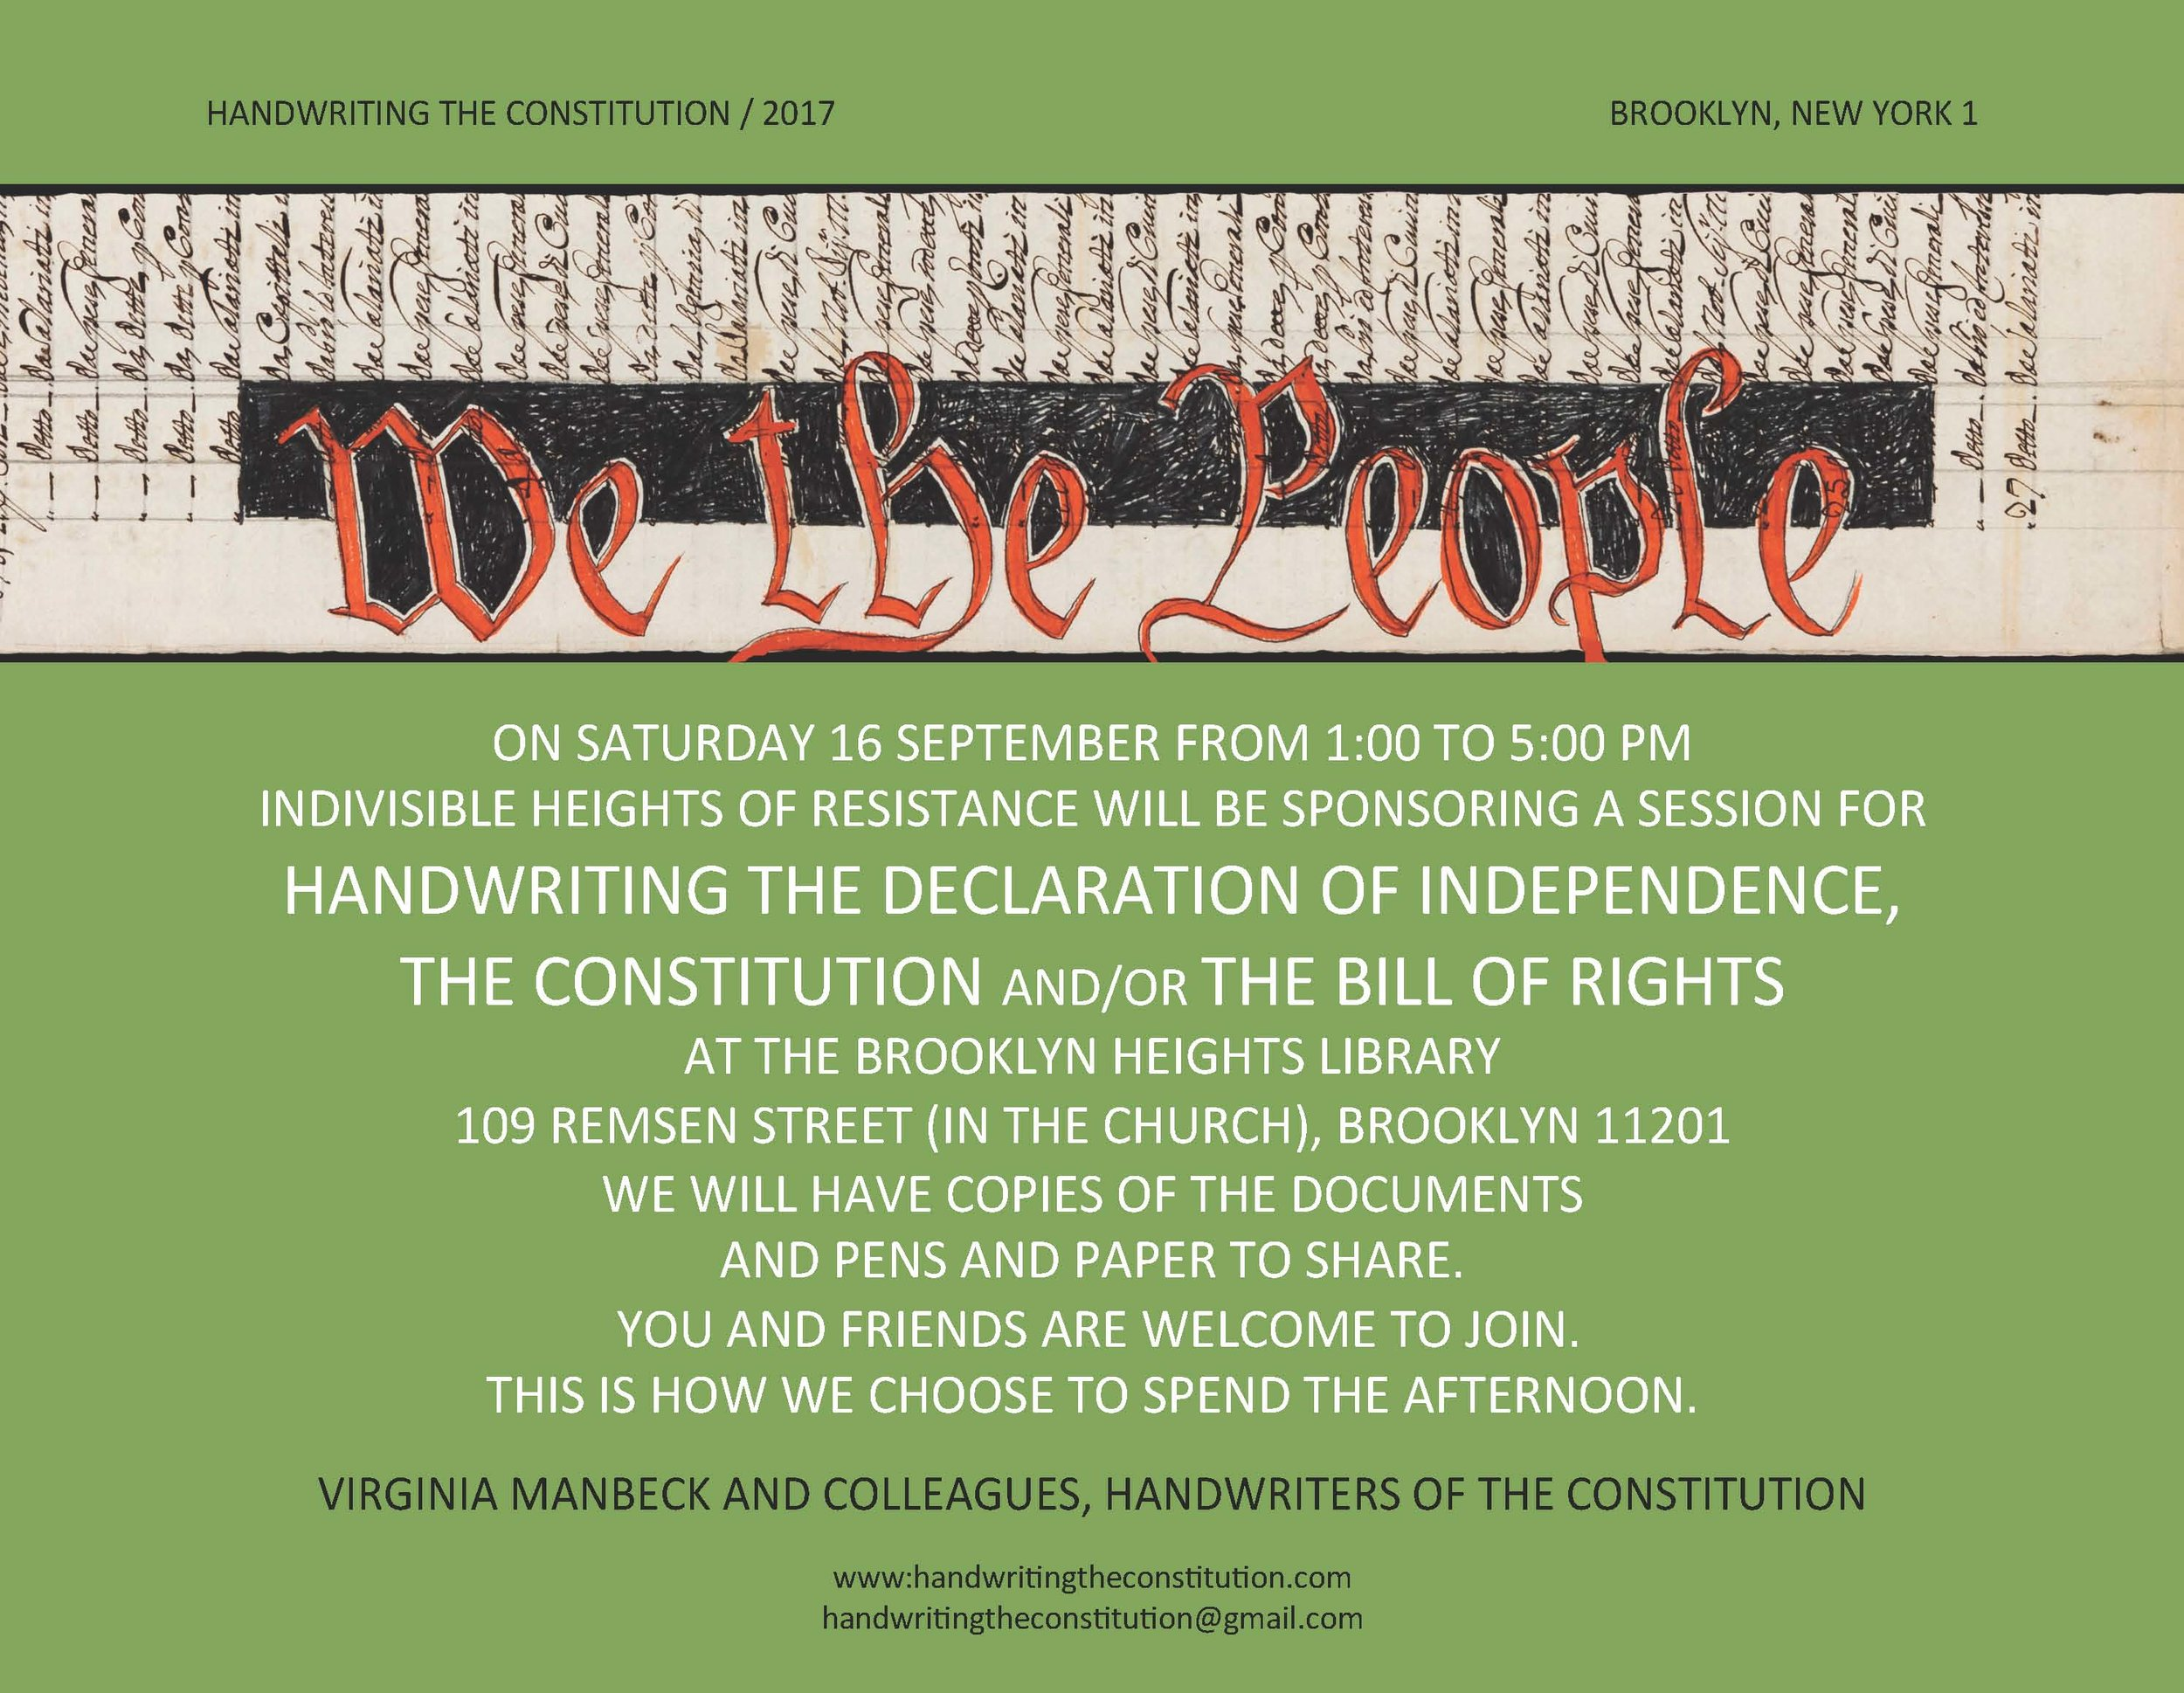 16 SEPTEMBER 2017BROOKLYN, NY  - COLLABORATORS VIRGINIA MANBECK,INDIVISIBLE HEIGHTS OF RESISTANCE